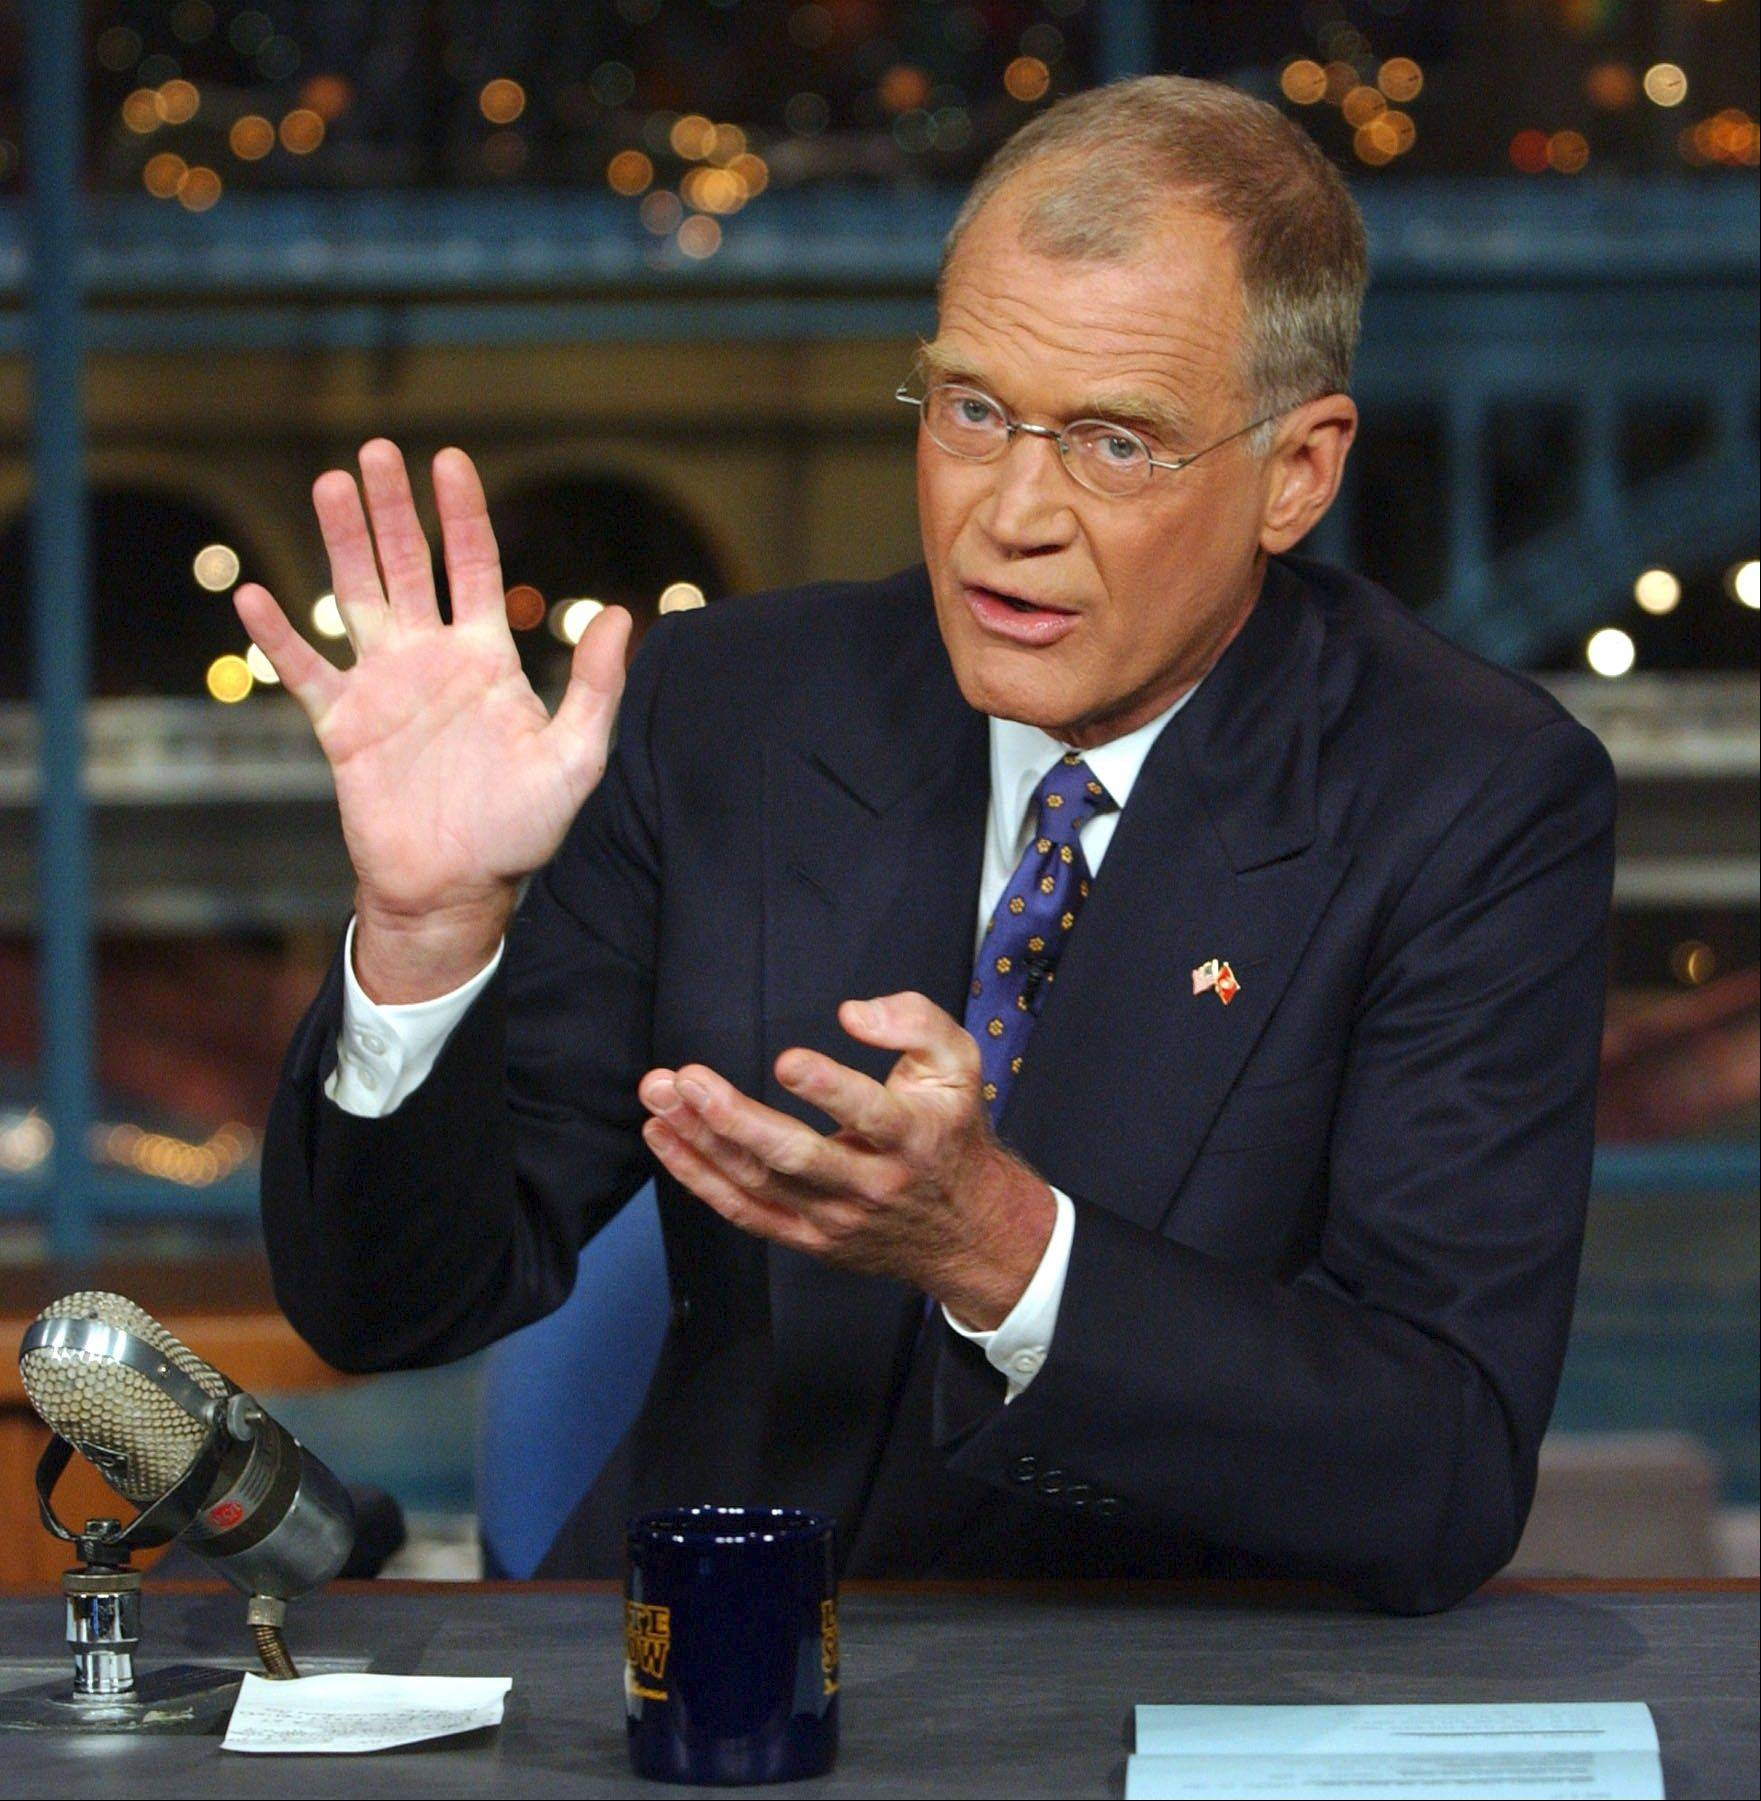 Television host David Letterman is celebrating 20 years on CBS.